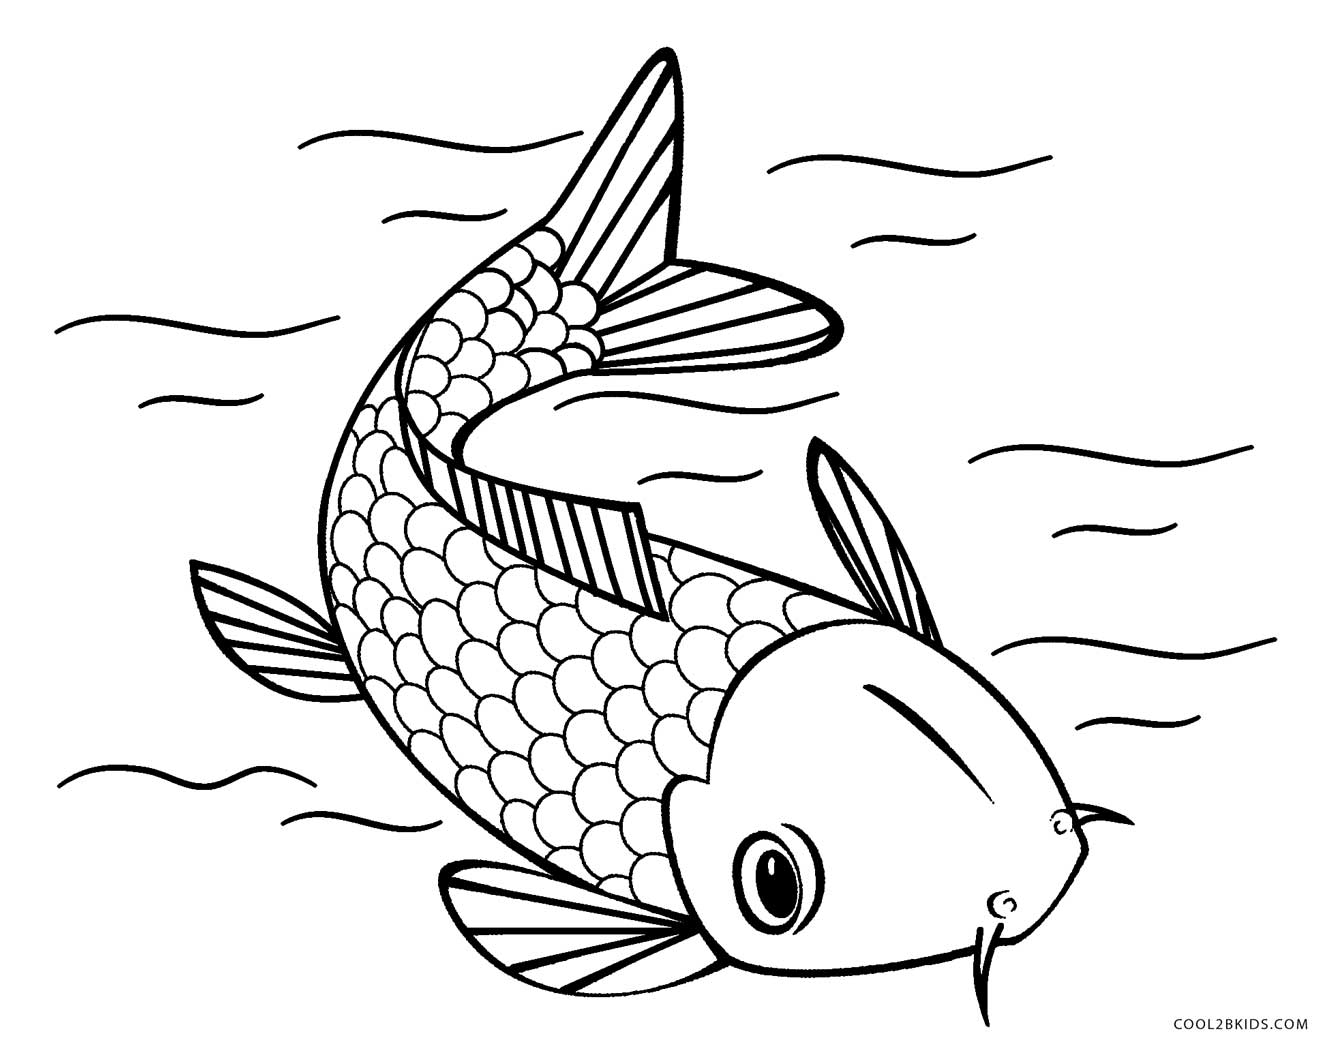 fish coloring for kids print download cute and educative fish coloring pages kids for fish coloring